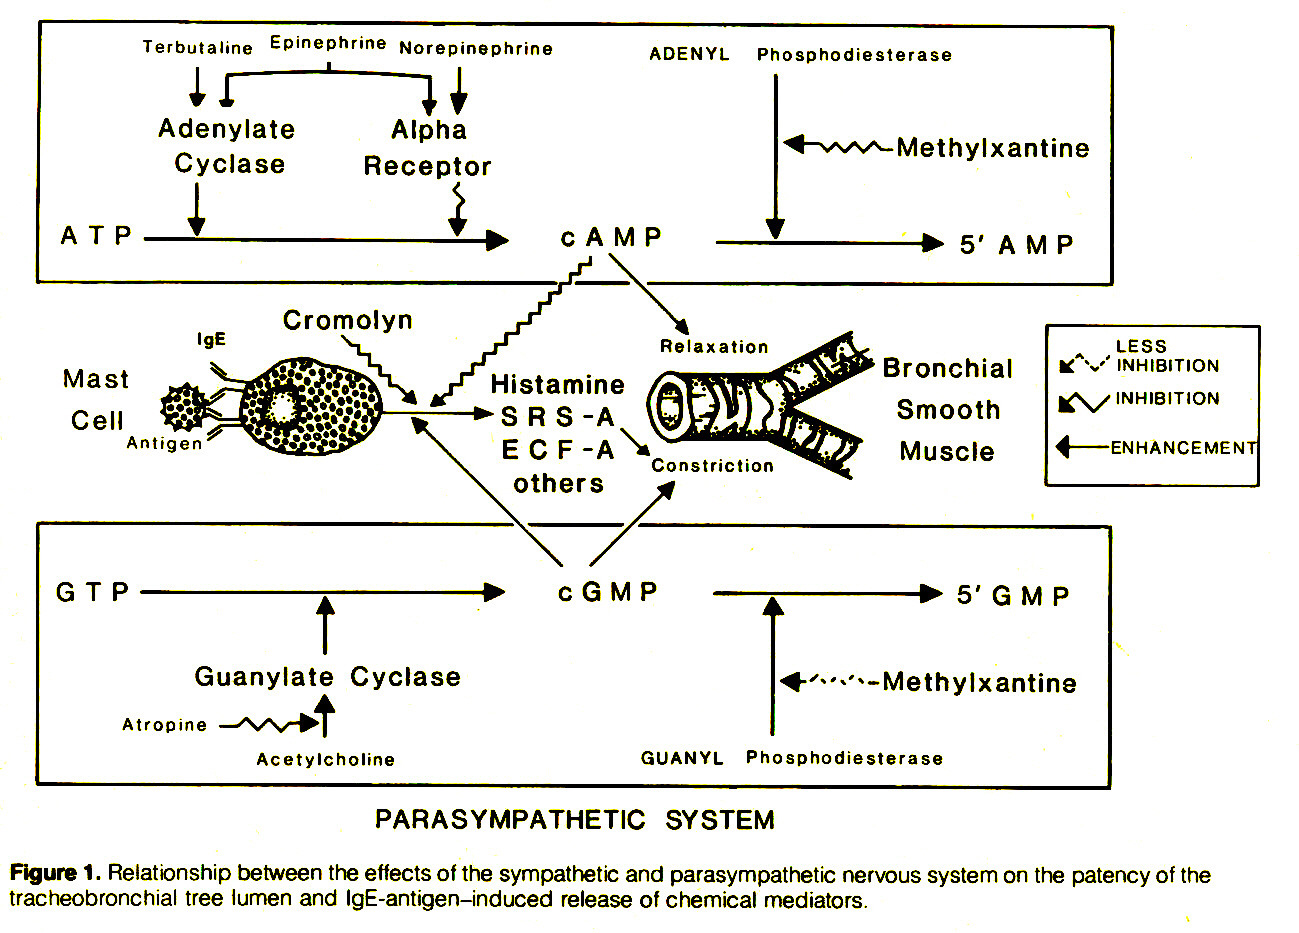 Figure 1. Relationship between the effects of the sympathetic and parasympathetic nervous system on the patency of the tracheobronchial tree lumen and IgE-antigen-induced release of chemical mediators.